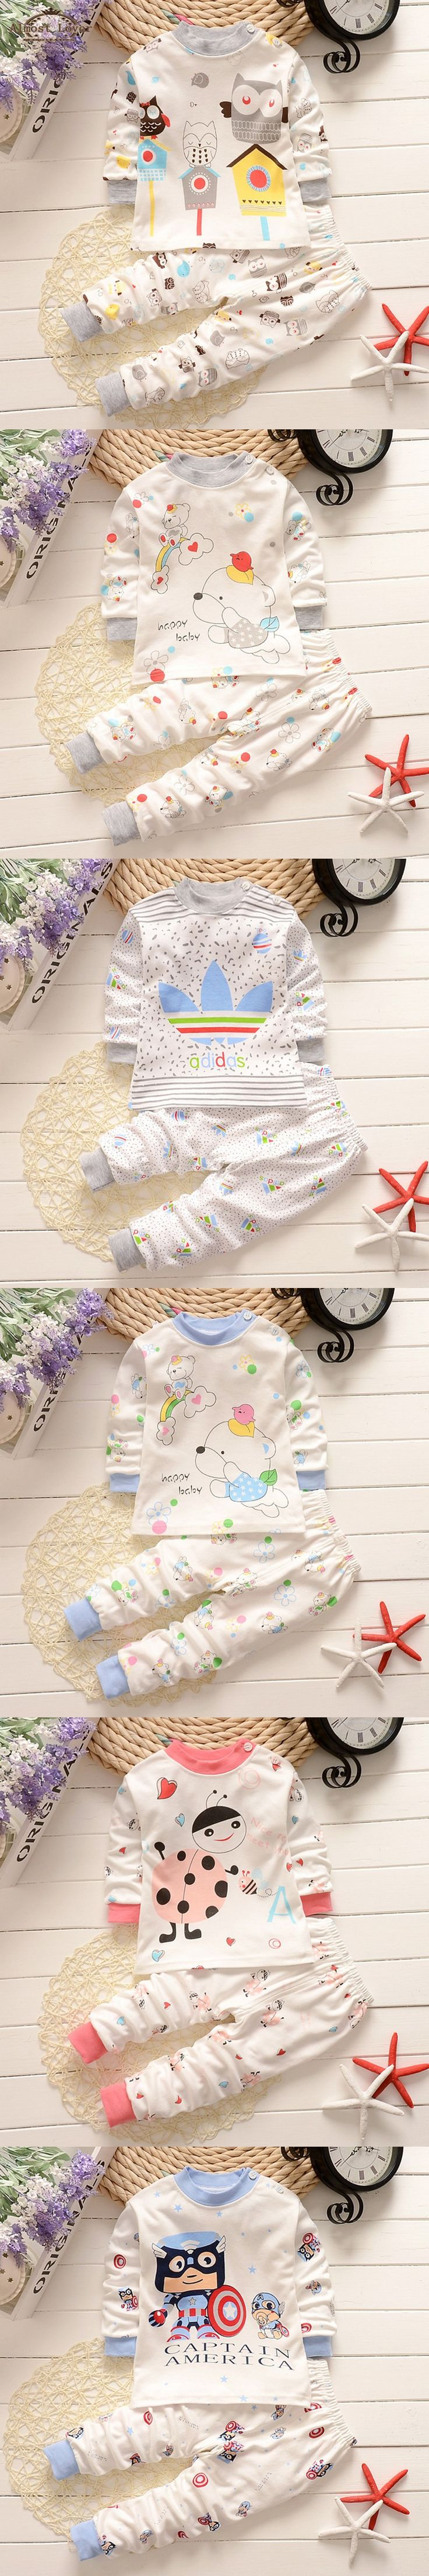 New Fall Winter Cotton Baby Boy Clothing Long sleeve T shirt+Pants Infant Boys Sets Kids Clothes Tracksuits for Newborn Chidlren $12.89